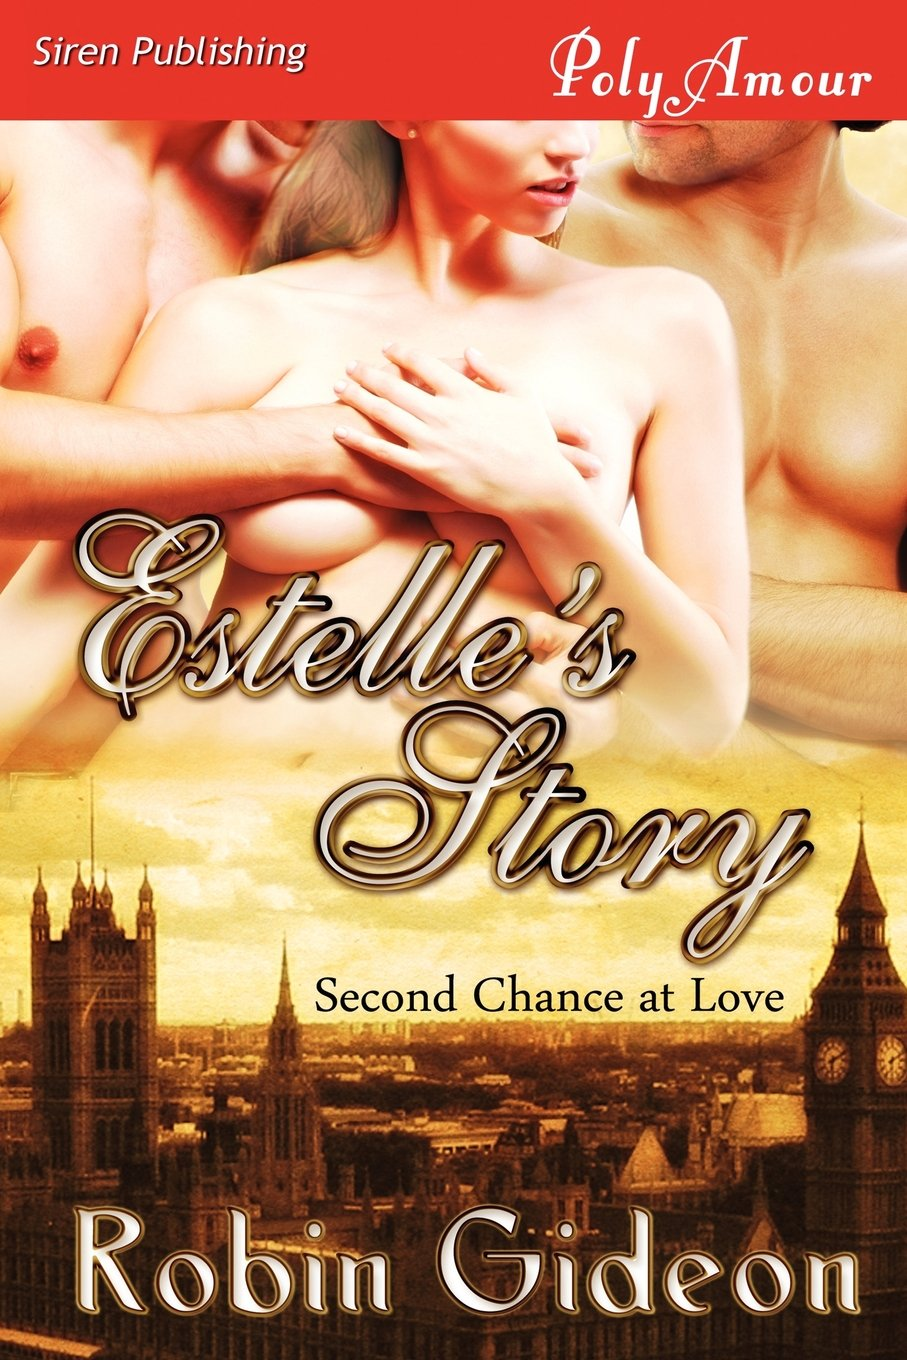 Estelle's Story [Second Chance at Love 1] (Siren Publishing Polyamour)  (Second Chance at Love, Siren Publishing Polyamour) Paperback – December  18, 2012